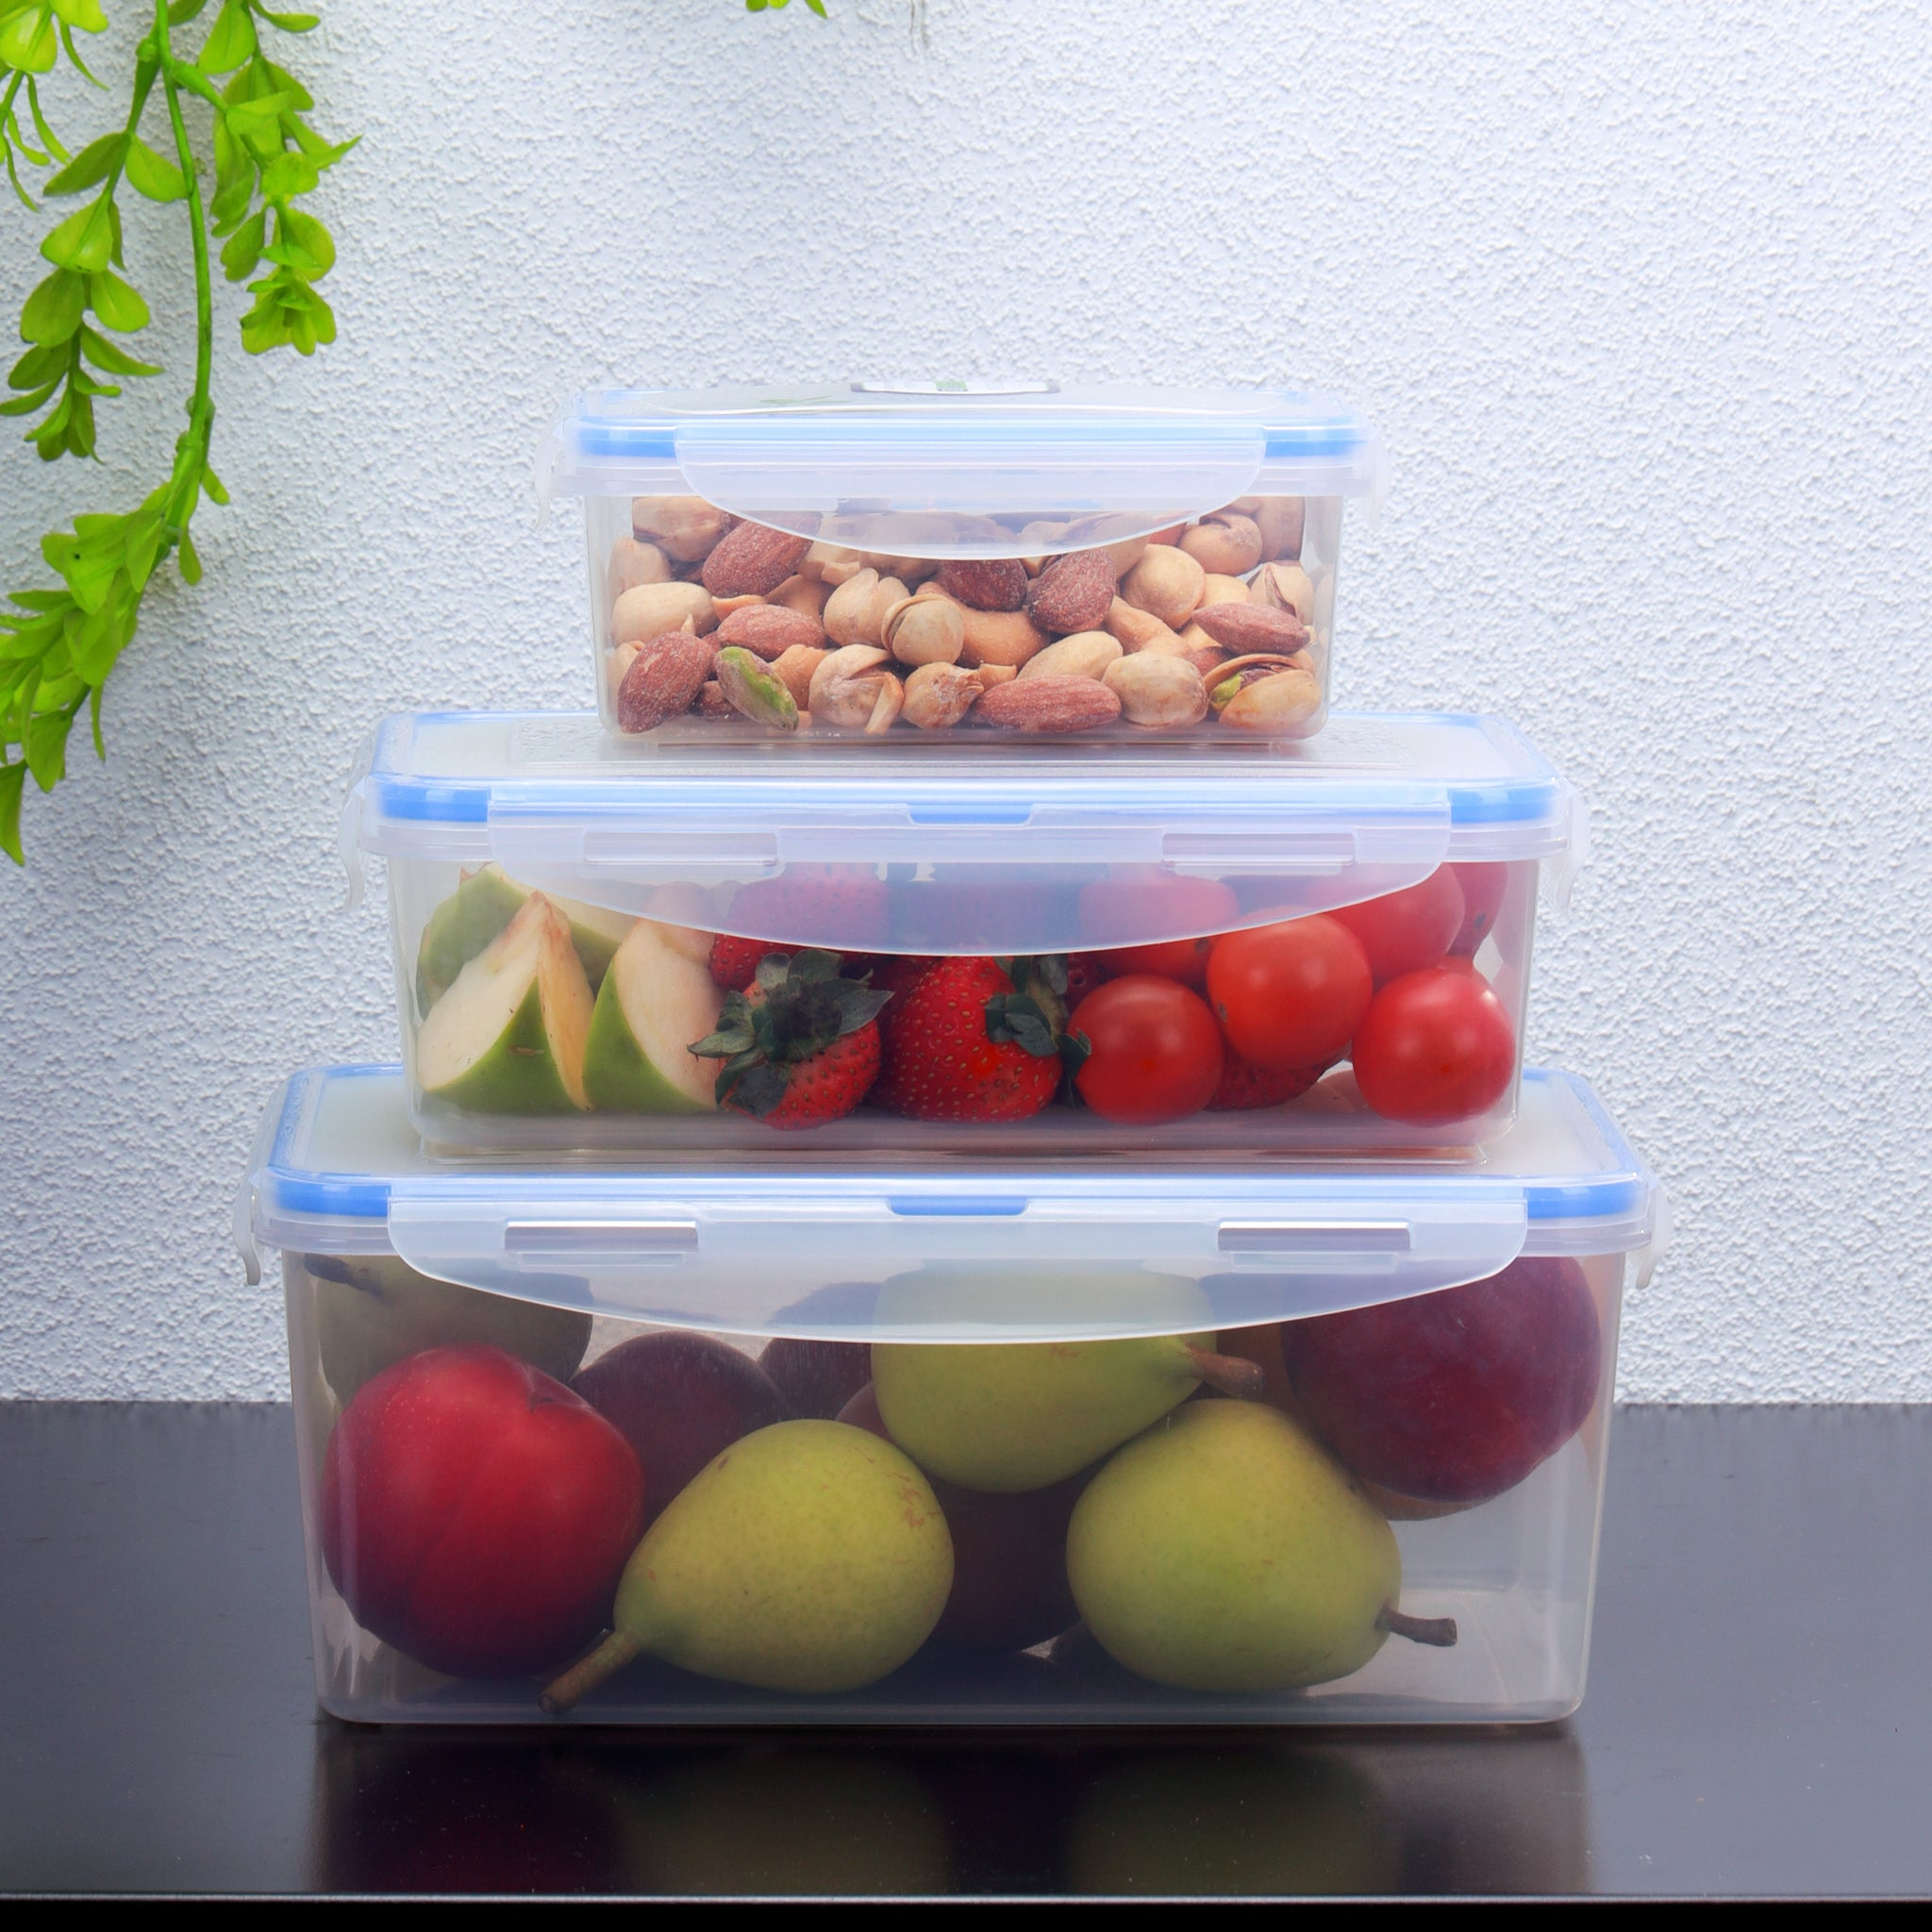 Royalford Meal Prep Containers Set of 3 | Premium Food Storage Transparent Container | BPA Free, Reusable, Airtight Food Storage Tray with Snap Locking Lid | Microwavable, Freezer & Dishwasher Safe